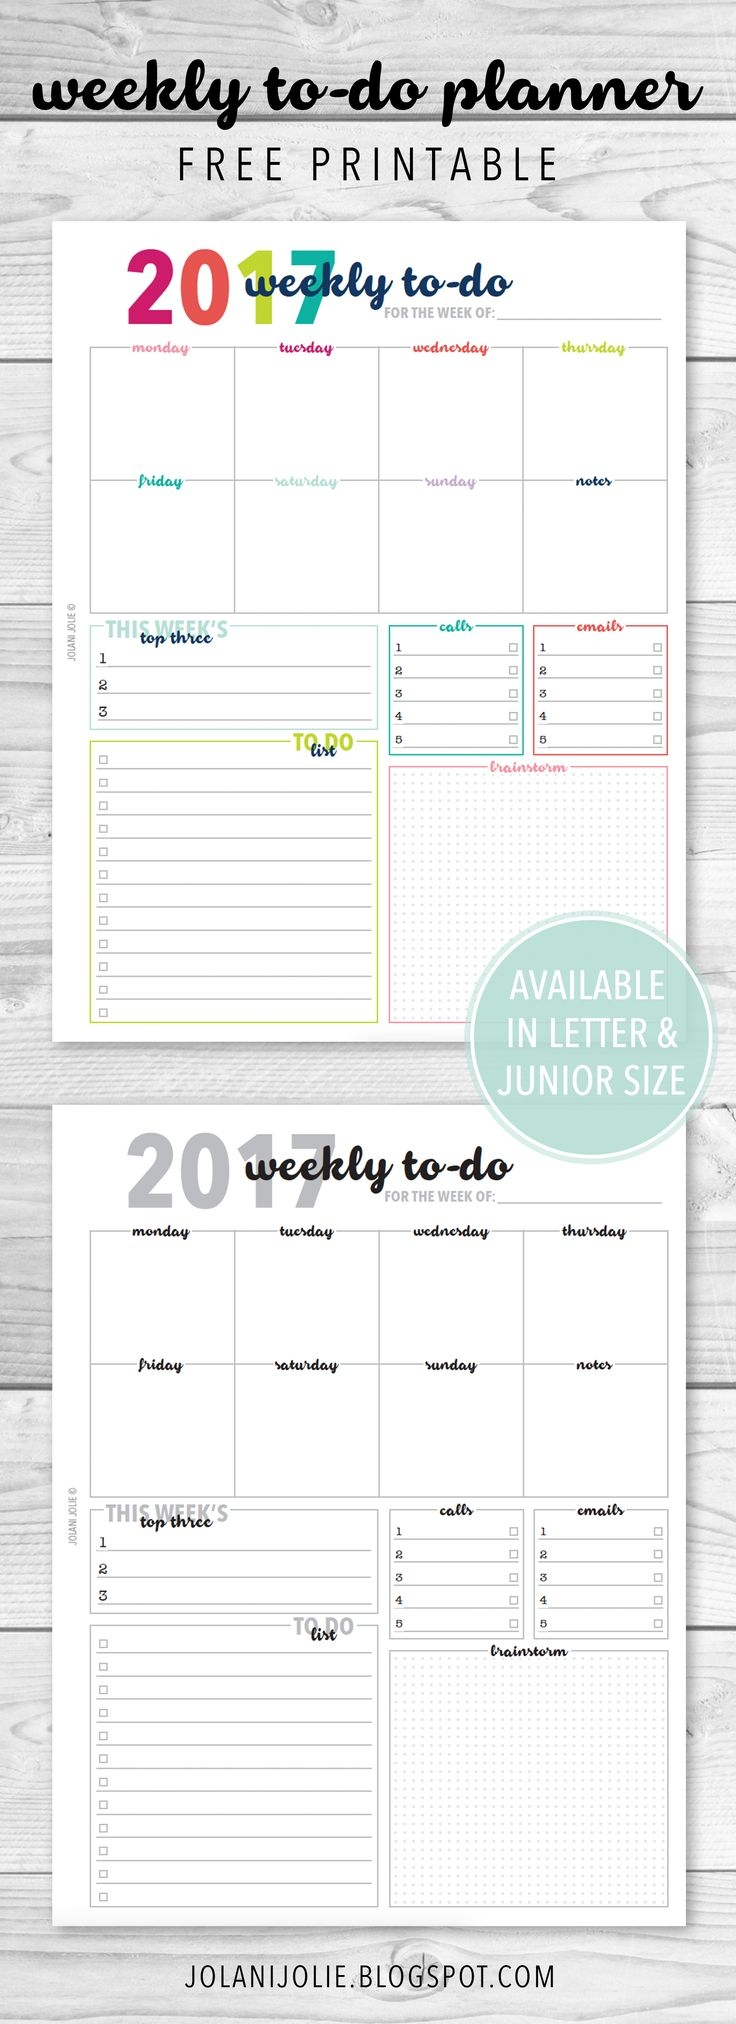 539 Best Planner Printables Organization Images On Pinterest  Xjb